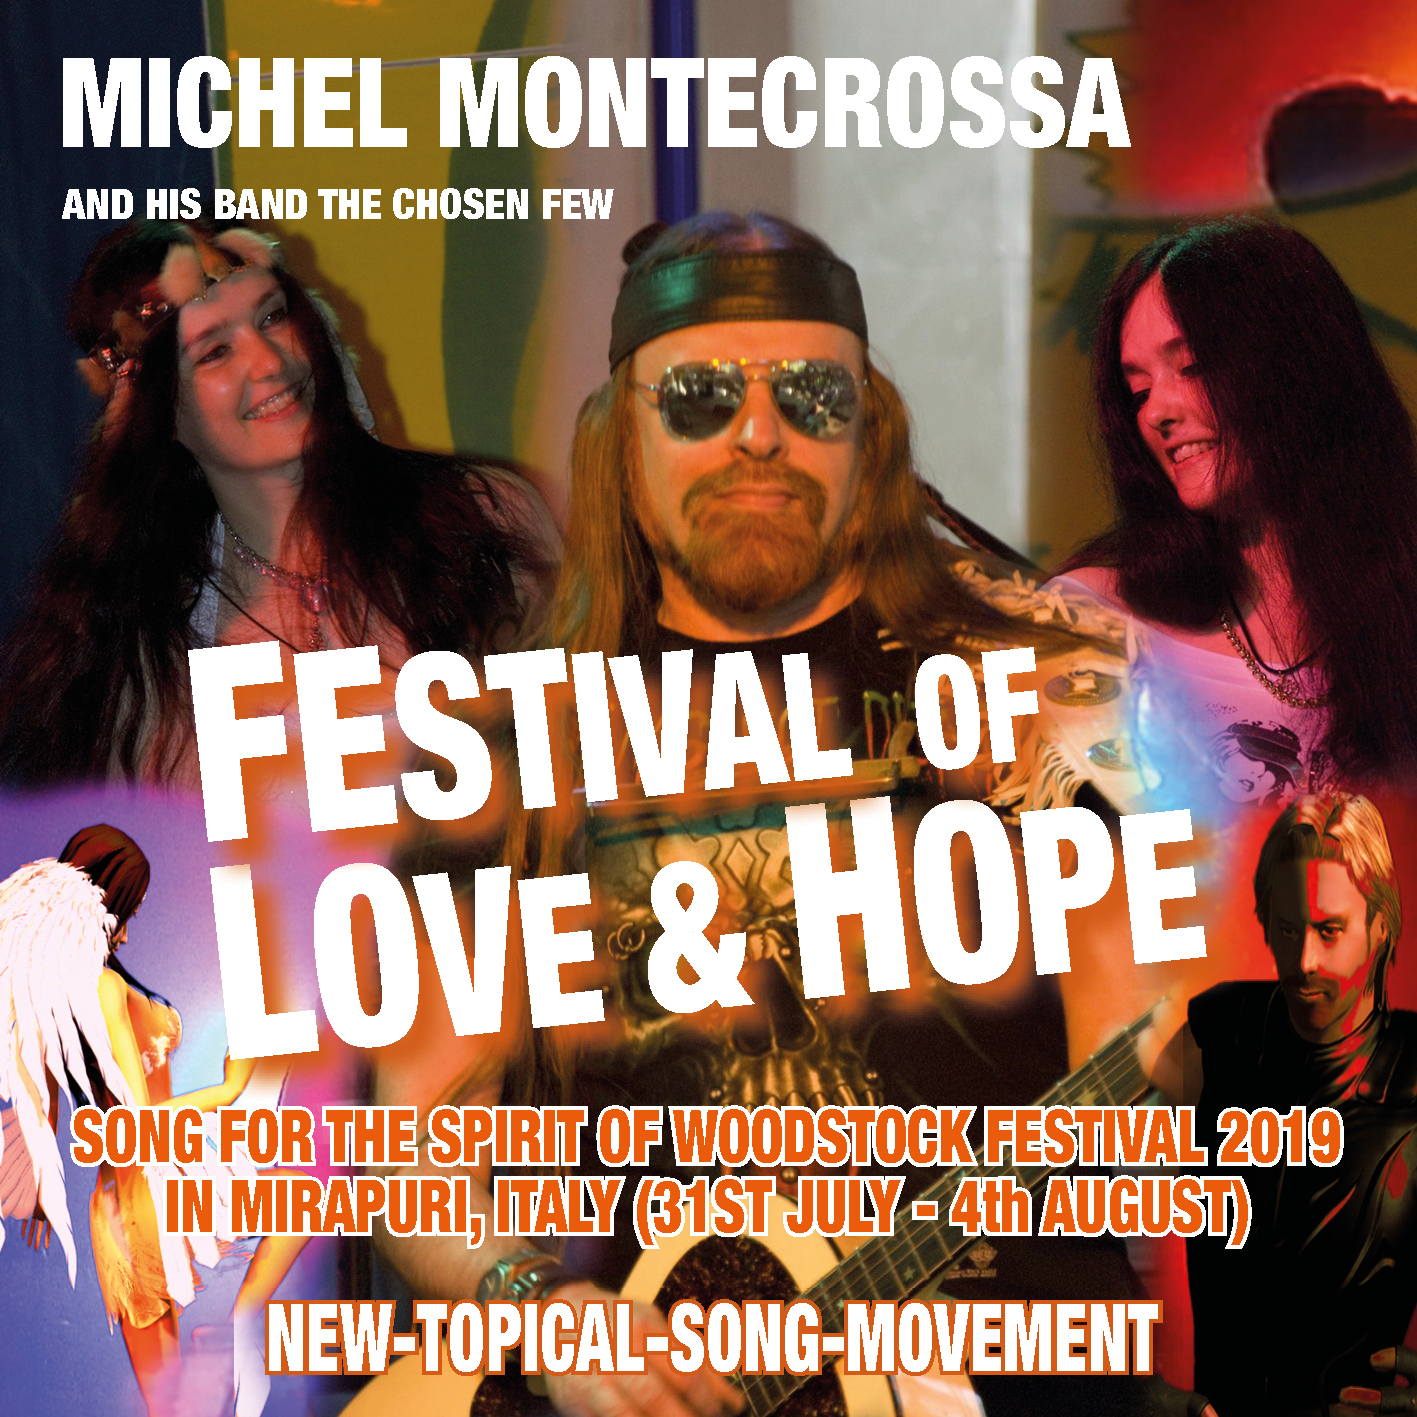 Festival of Love & Hope